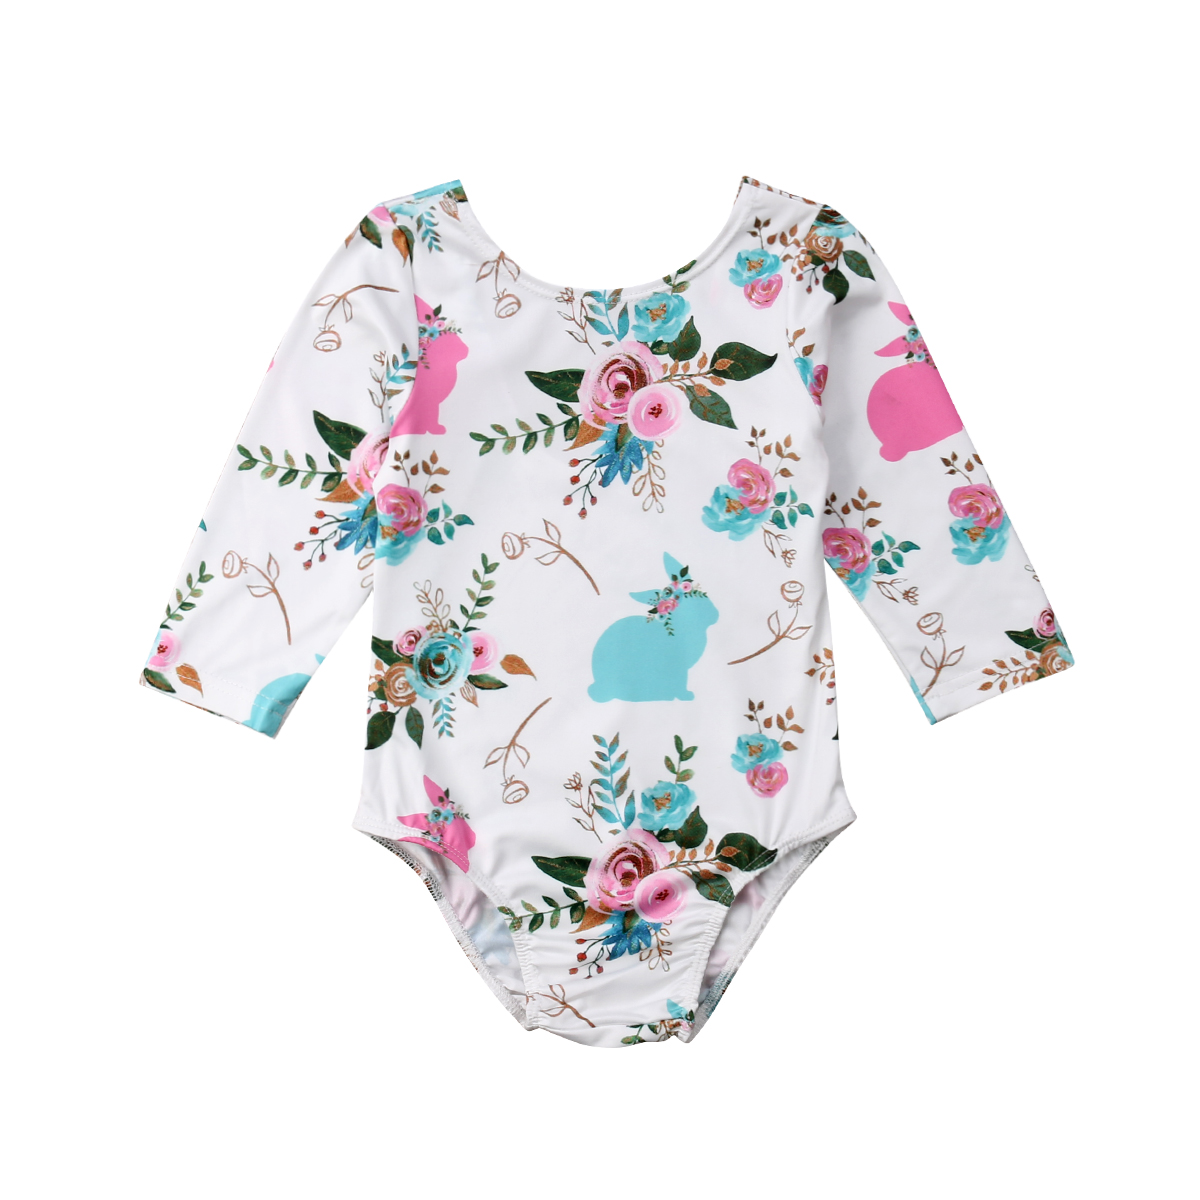 Girls' Baby Clothing Careful Bow Baby Girls Clothing Newborn Baby Girl Floral Rompers Long Sleeve Jumpsuit Playsuit Summer Baby Girls Clothes With The Best Service